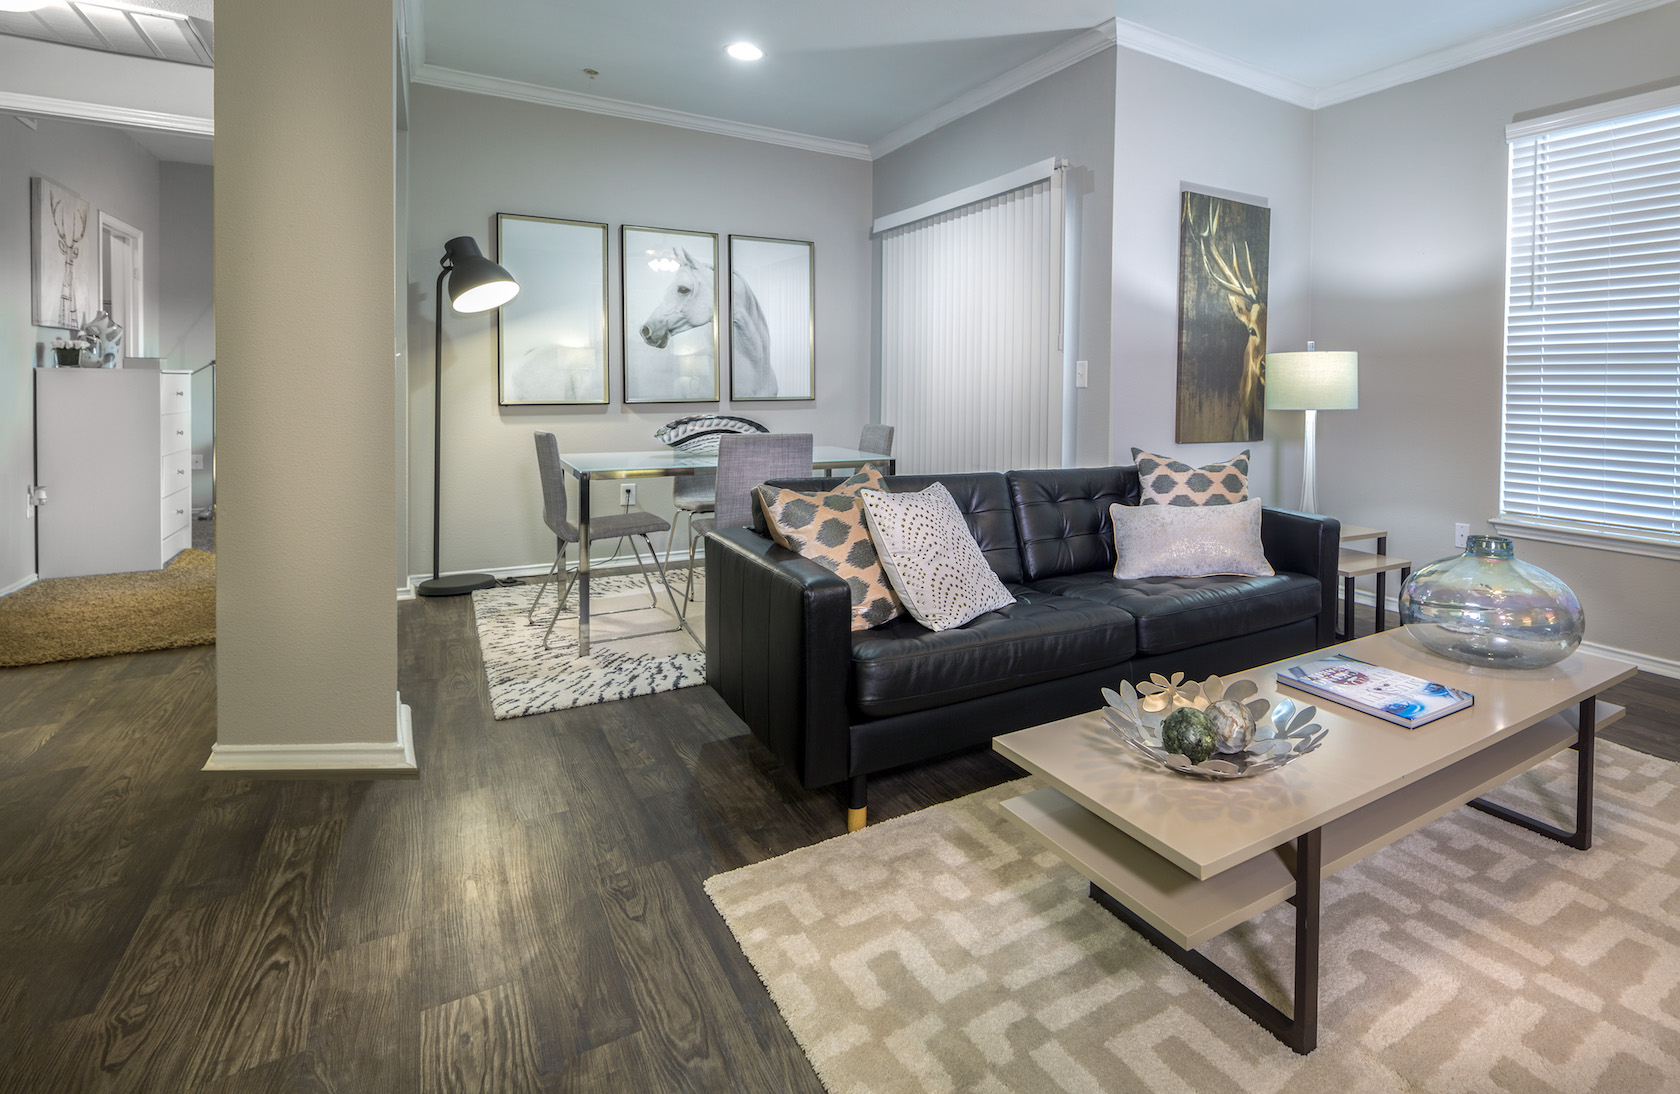 Two-Bedroom Apartments at The Link, a Community of Luxury Apartments in Houston, Texas